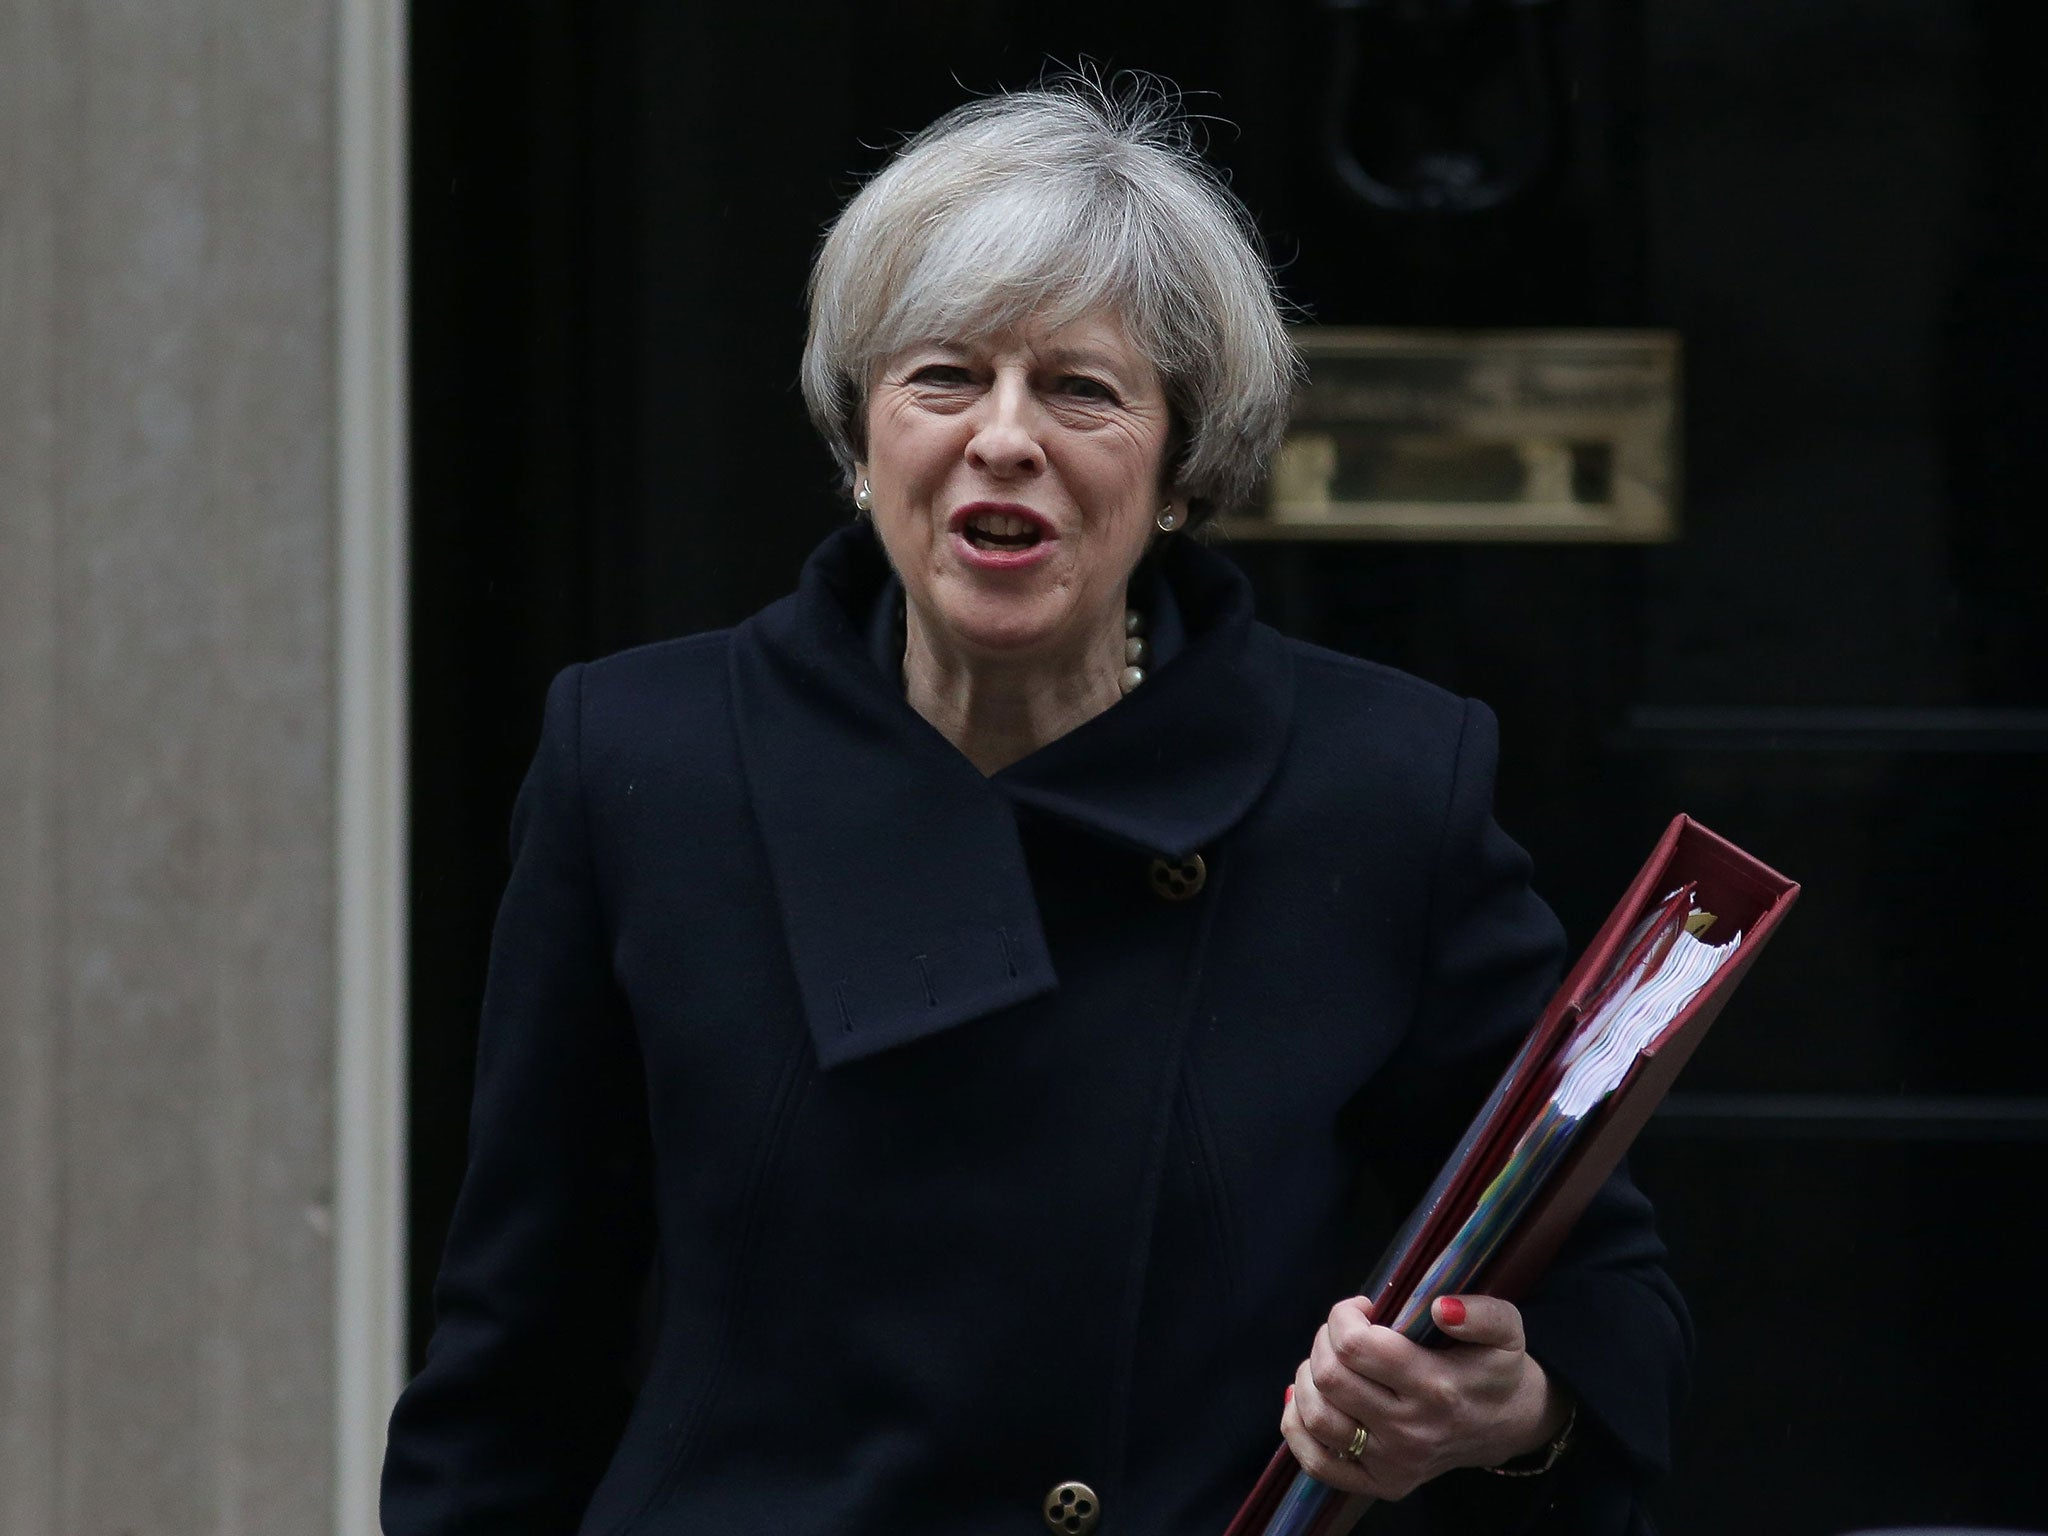 Brexit White Paper: Read the 12 key points from Theresa May's plan for the UK